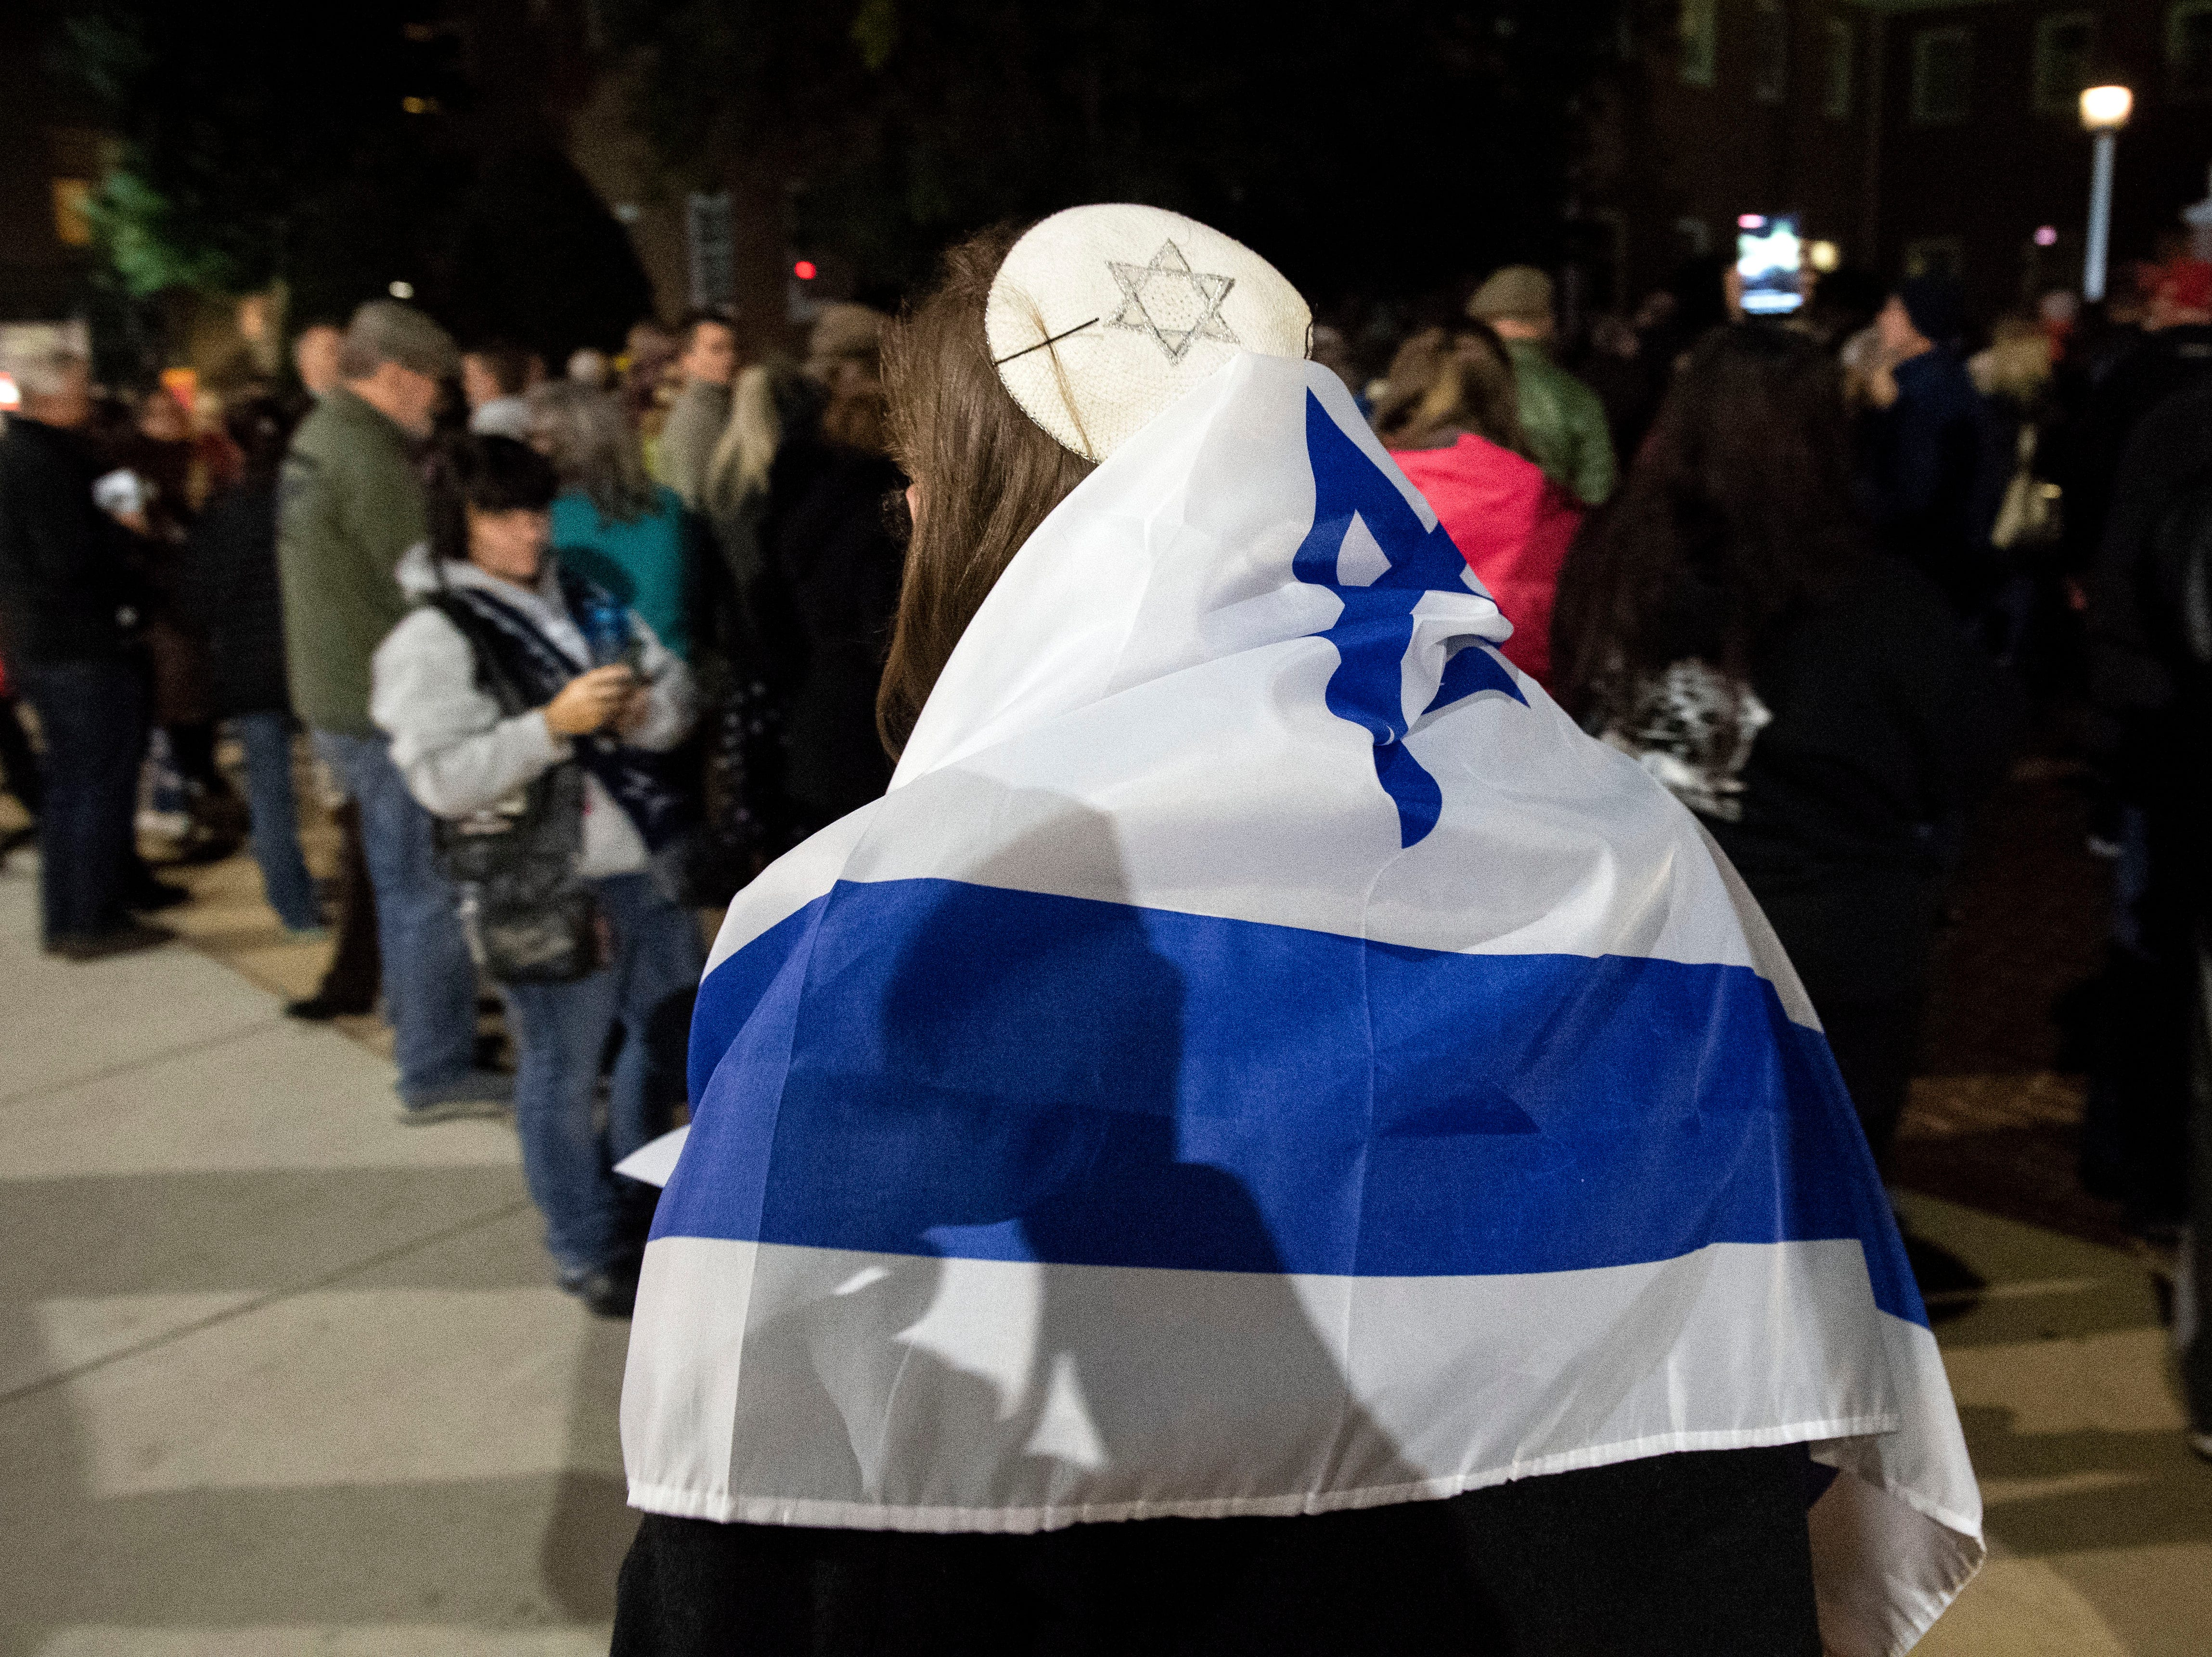 Wrapped in a flag of Israel, John Sutherland walks past a crowd during a candlelight vigil in front of city hall on Monday, Oct. 29, 2018. Hundreds of people gathered for the 'York Vigil against Hate,' mourning the 11 dead from the weekend shooting at Tree of Life synagogue in Pittsburgh.